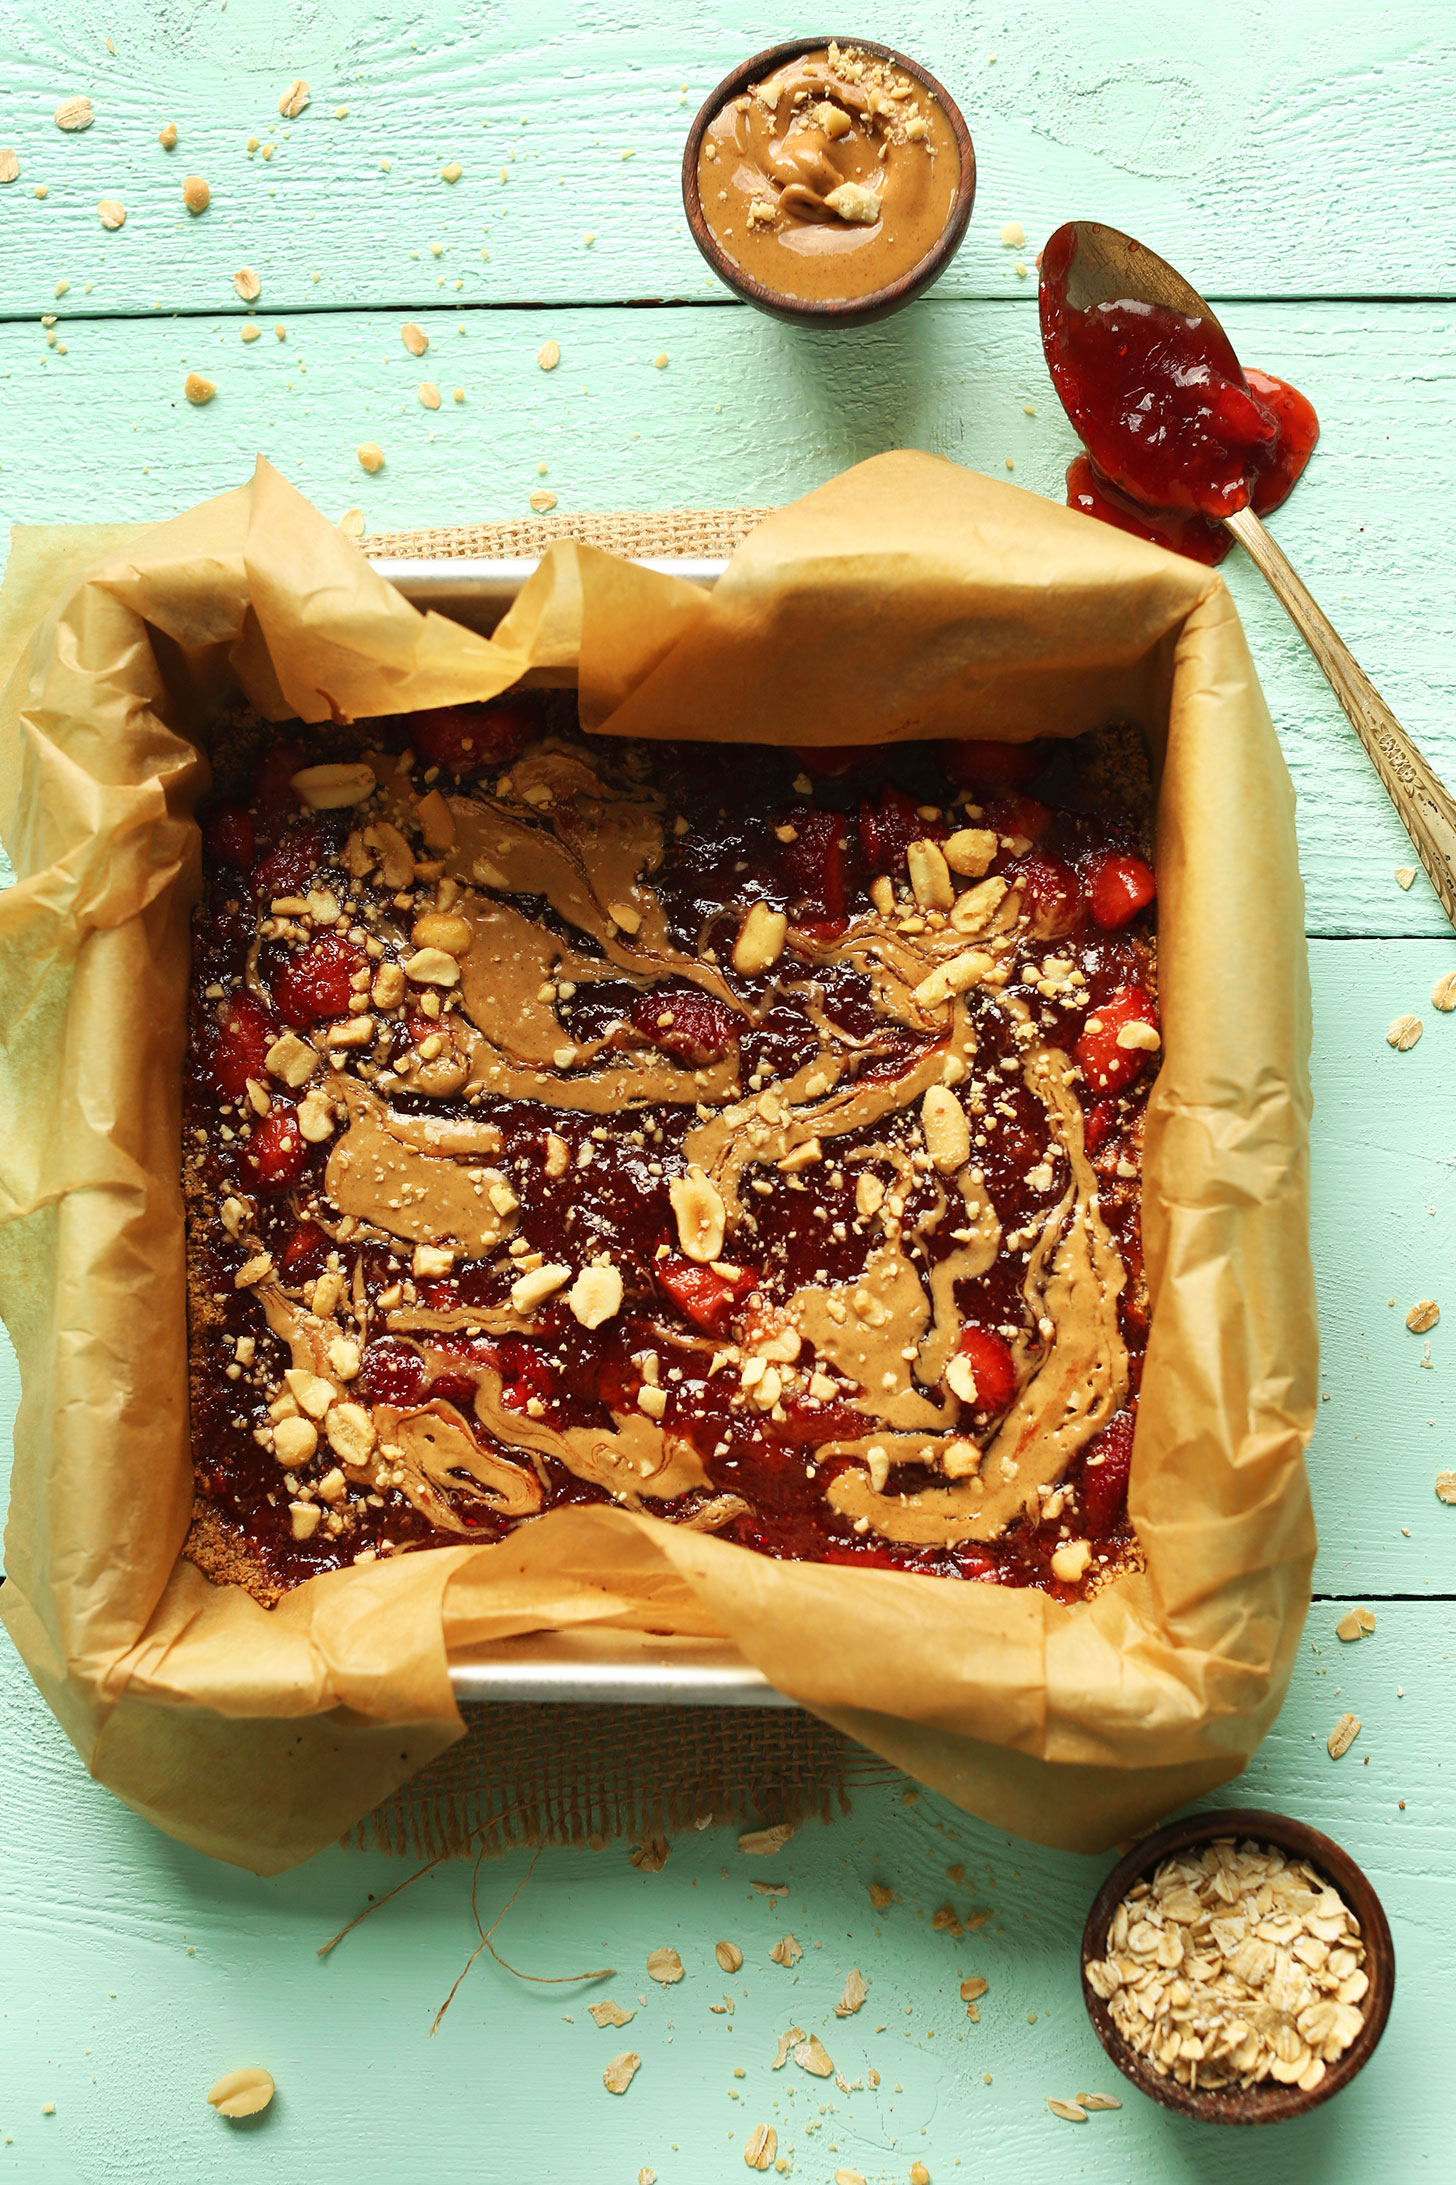 Parchment-lined baking pan filled with a batch of our PB&J Bars recipe for a gluten-free vegan snack